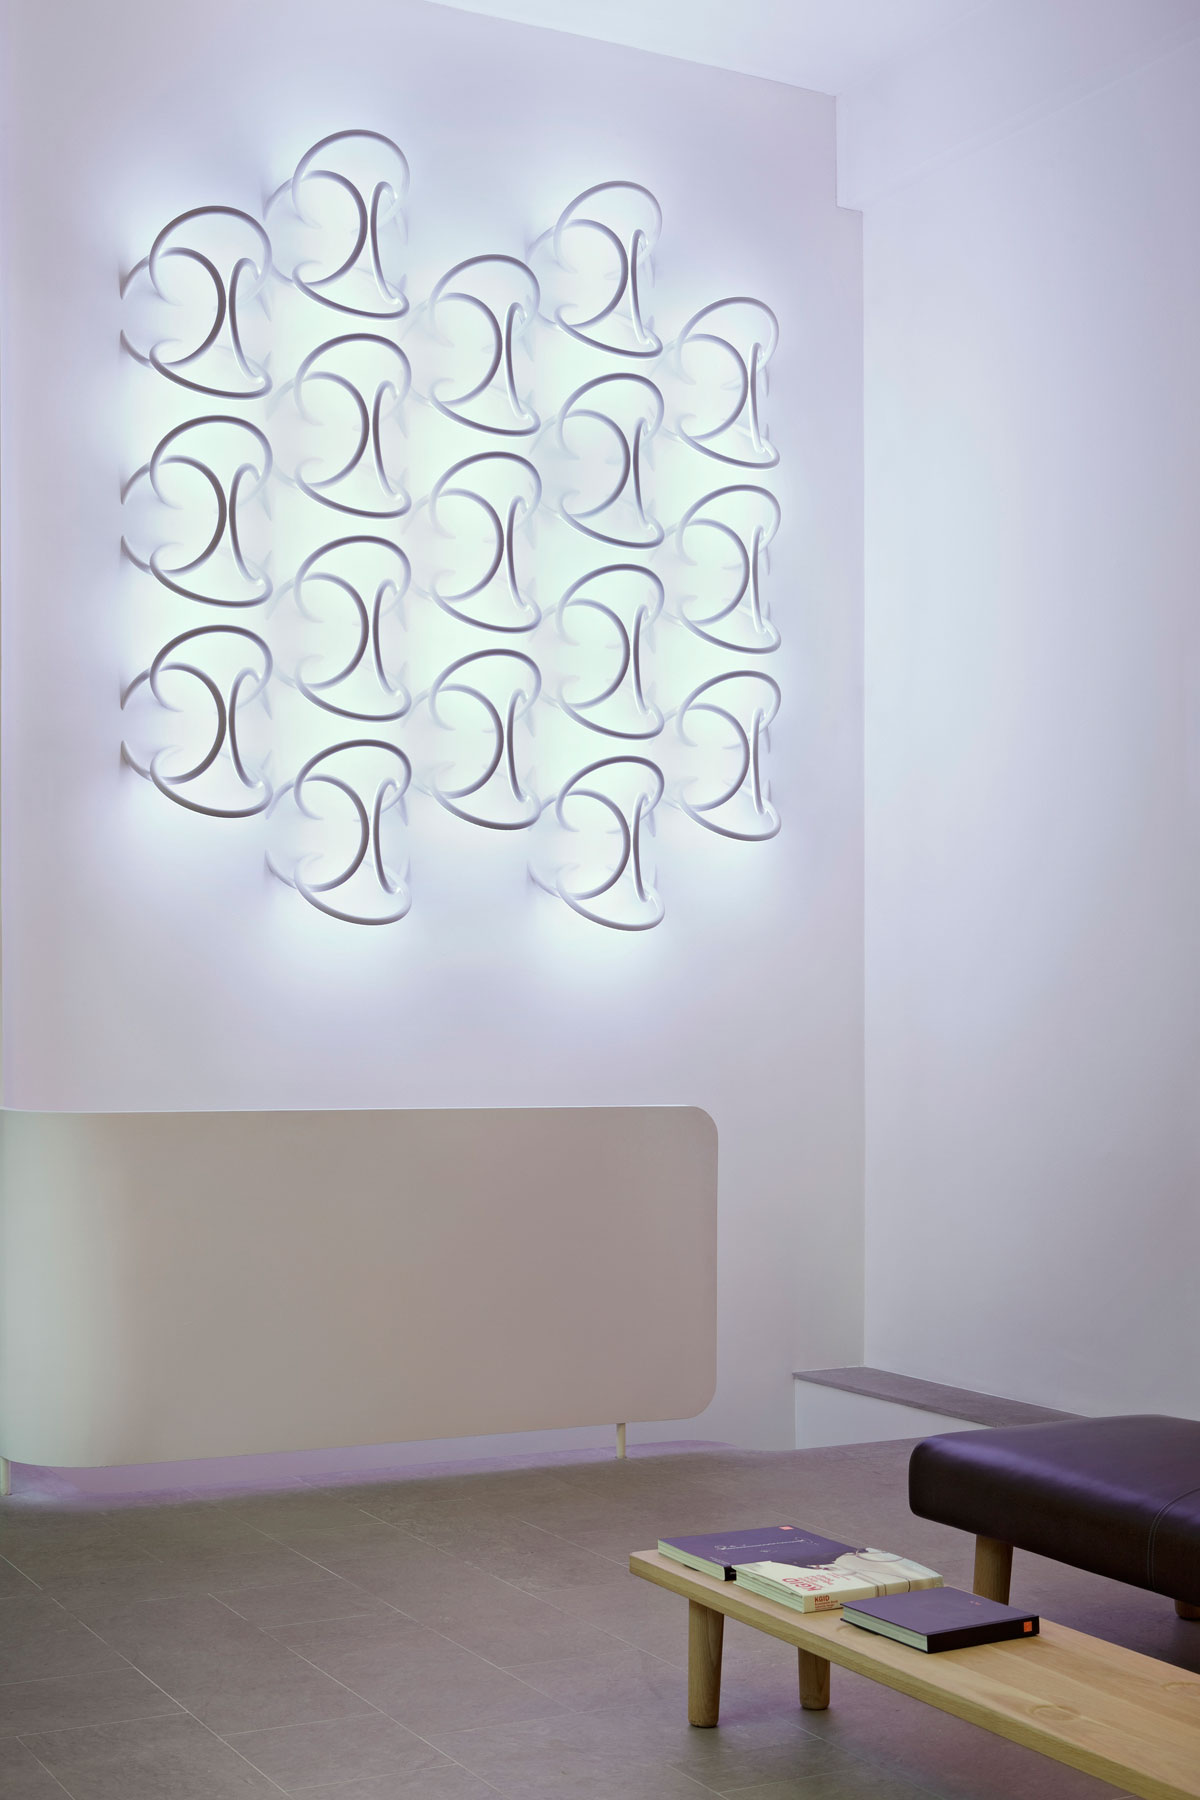 Architectural Lighting Soft Architecture Collection FLOS USA Inc